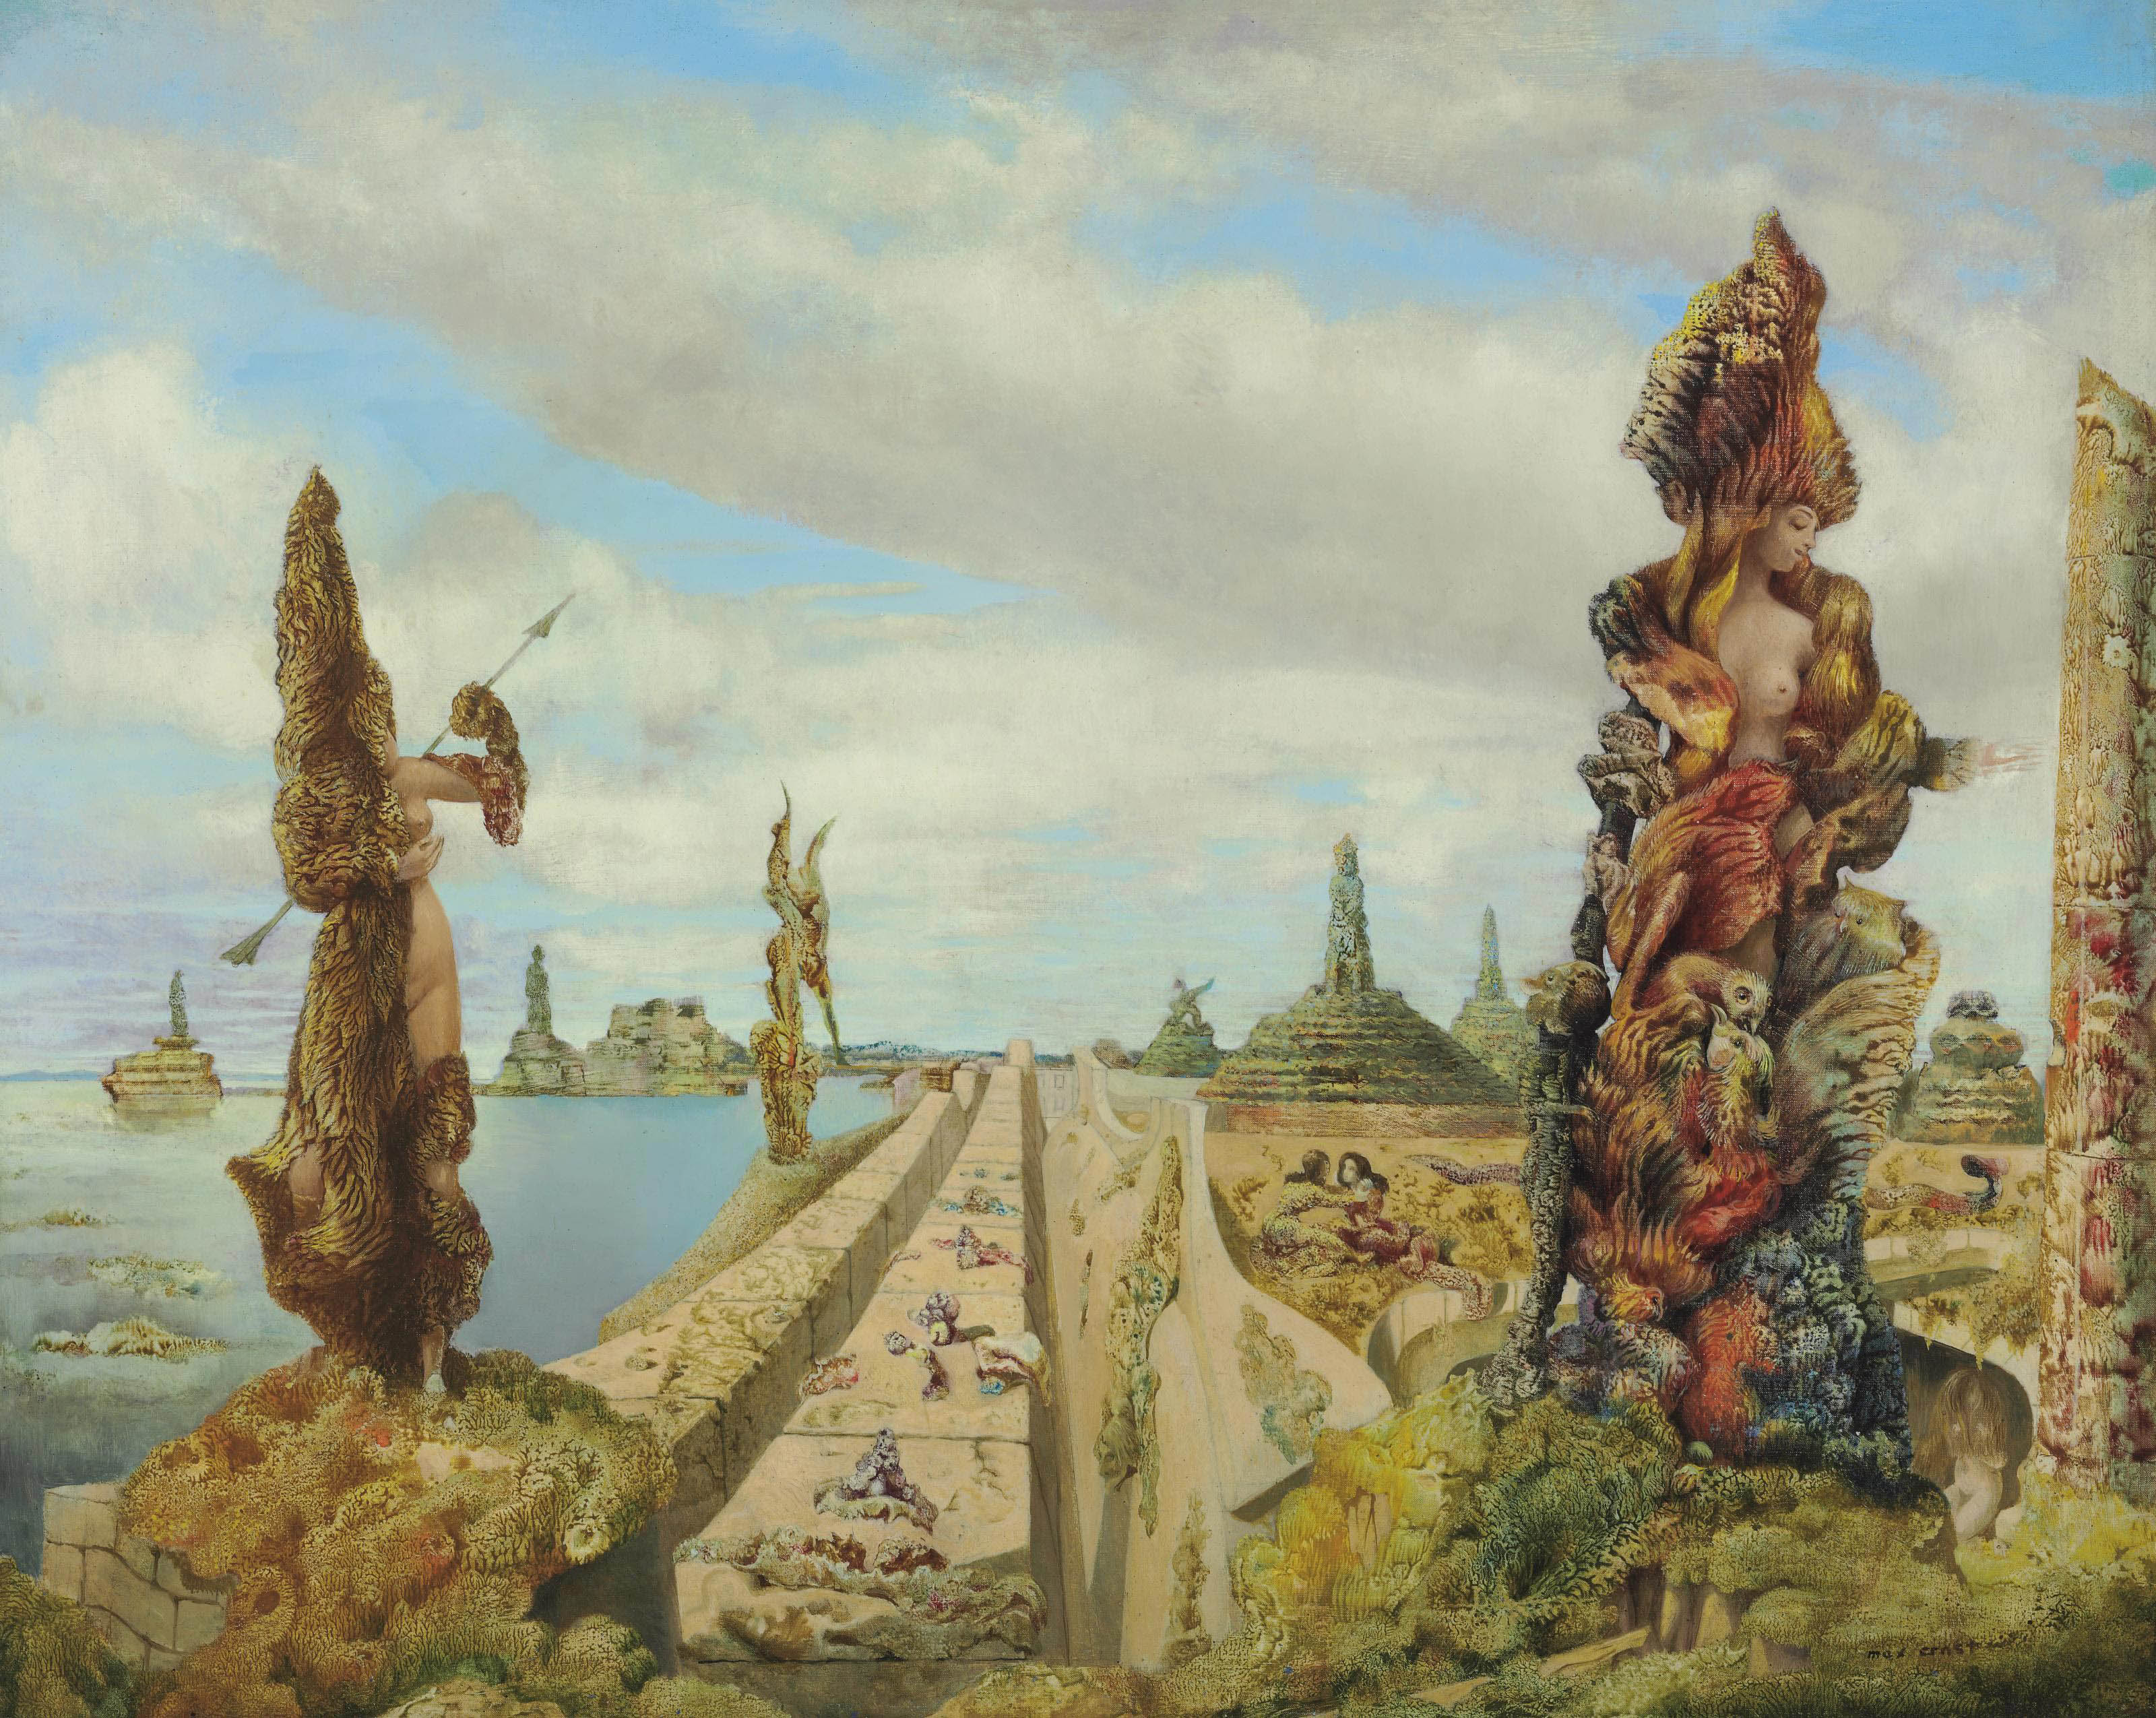 Audio: Max Ernst, The Stolen Mirror